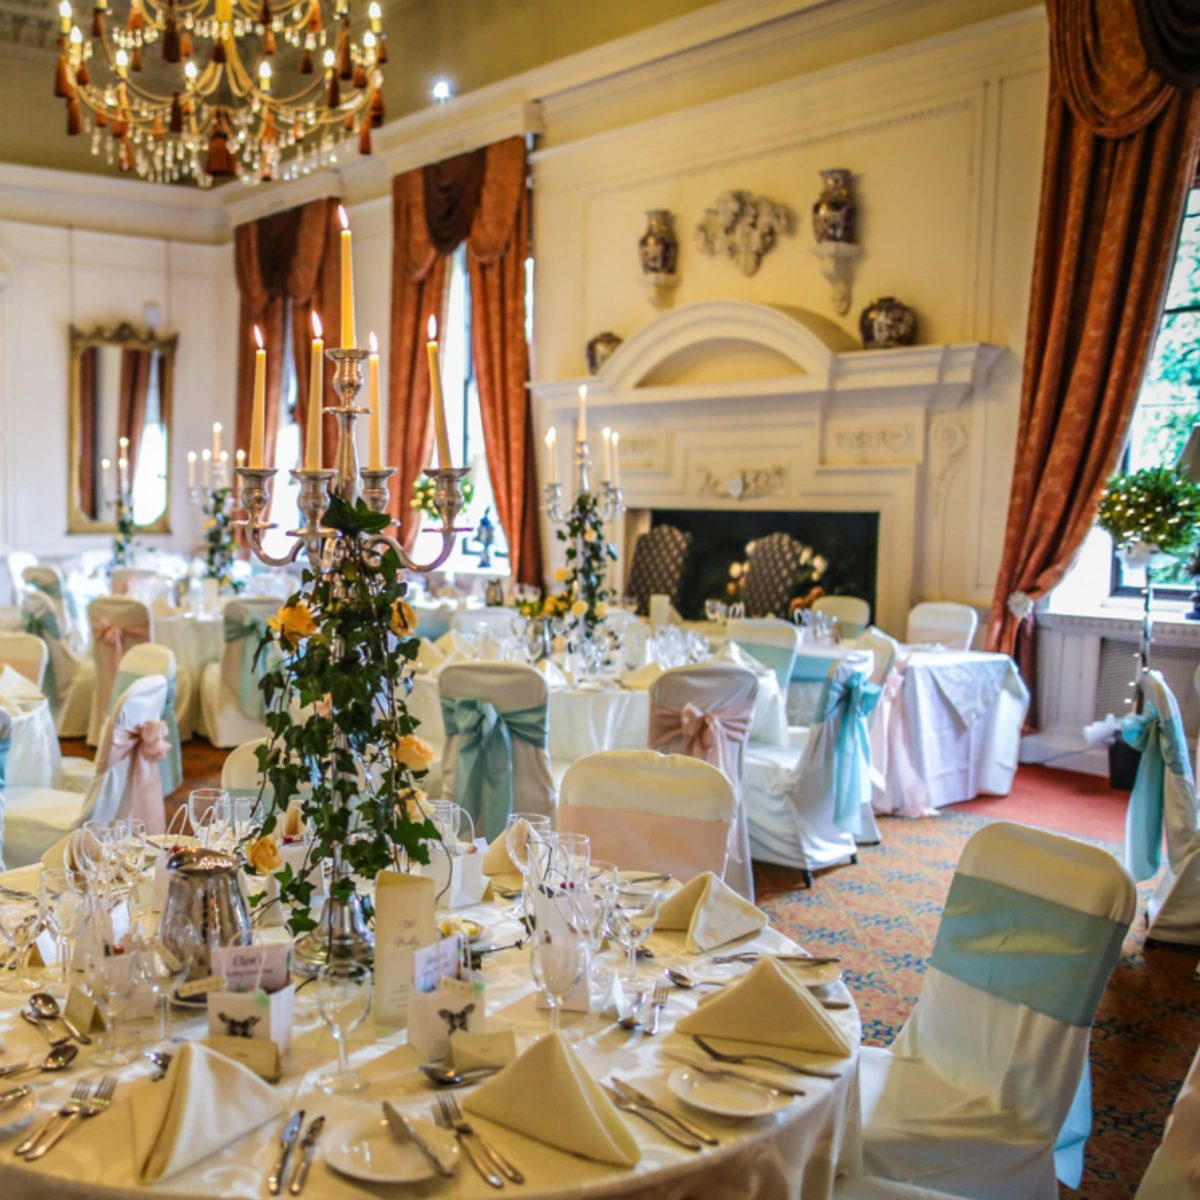 Pamper party packages at Coombe Abbey